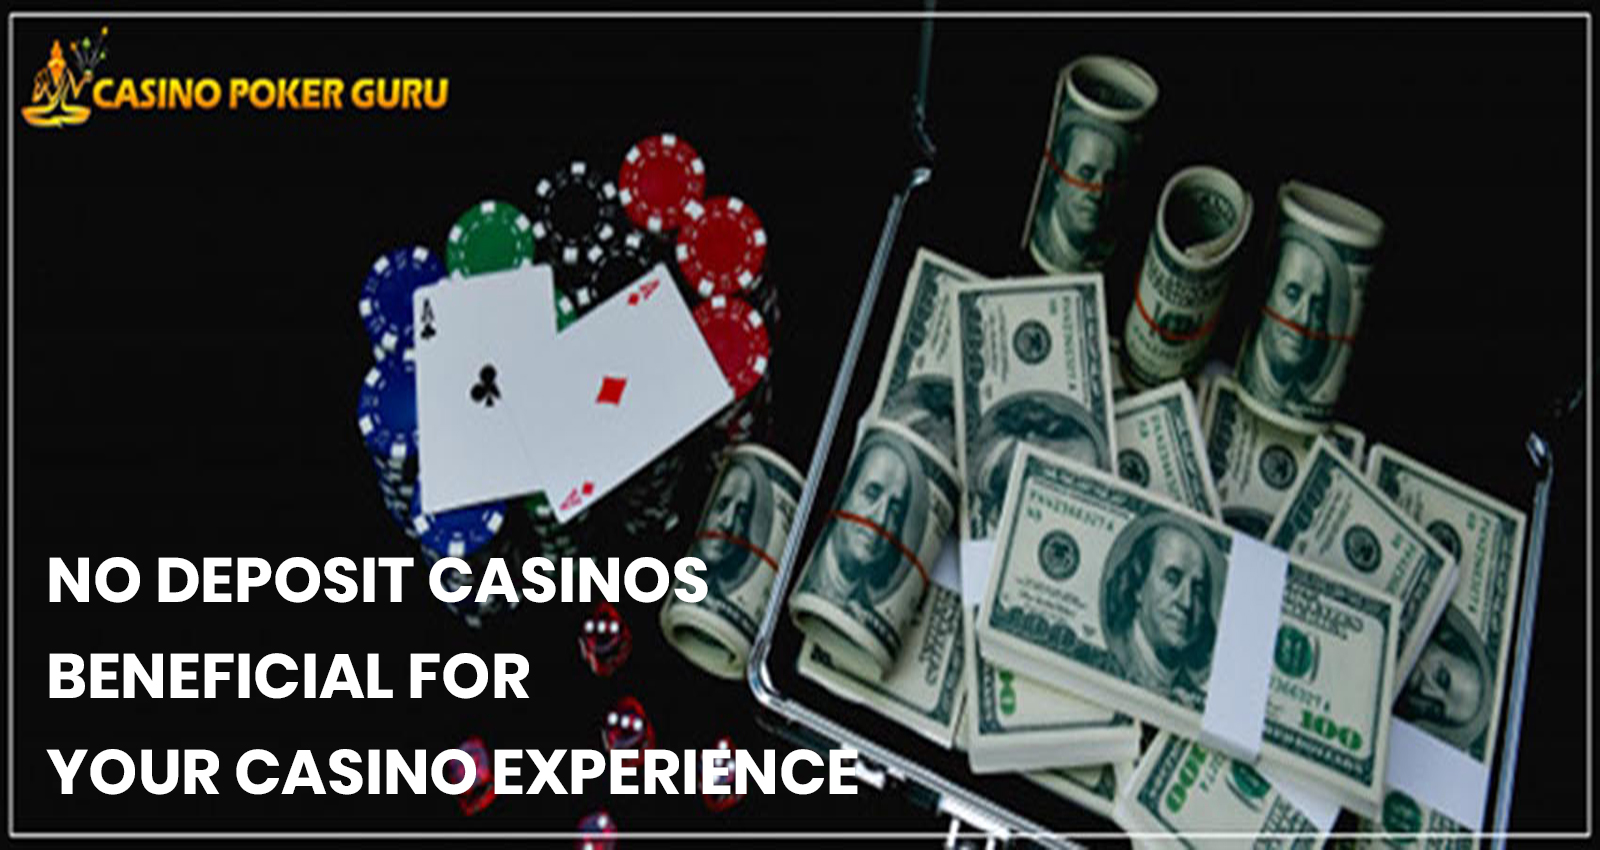 No deposit Casinos—Beneficial for Your Casino Experience